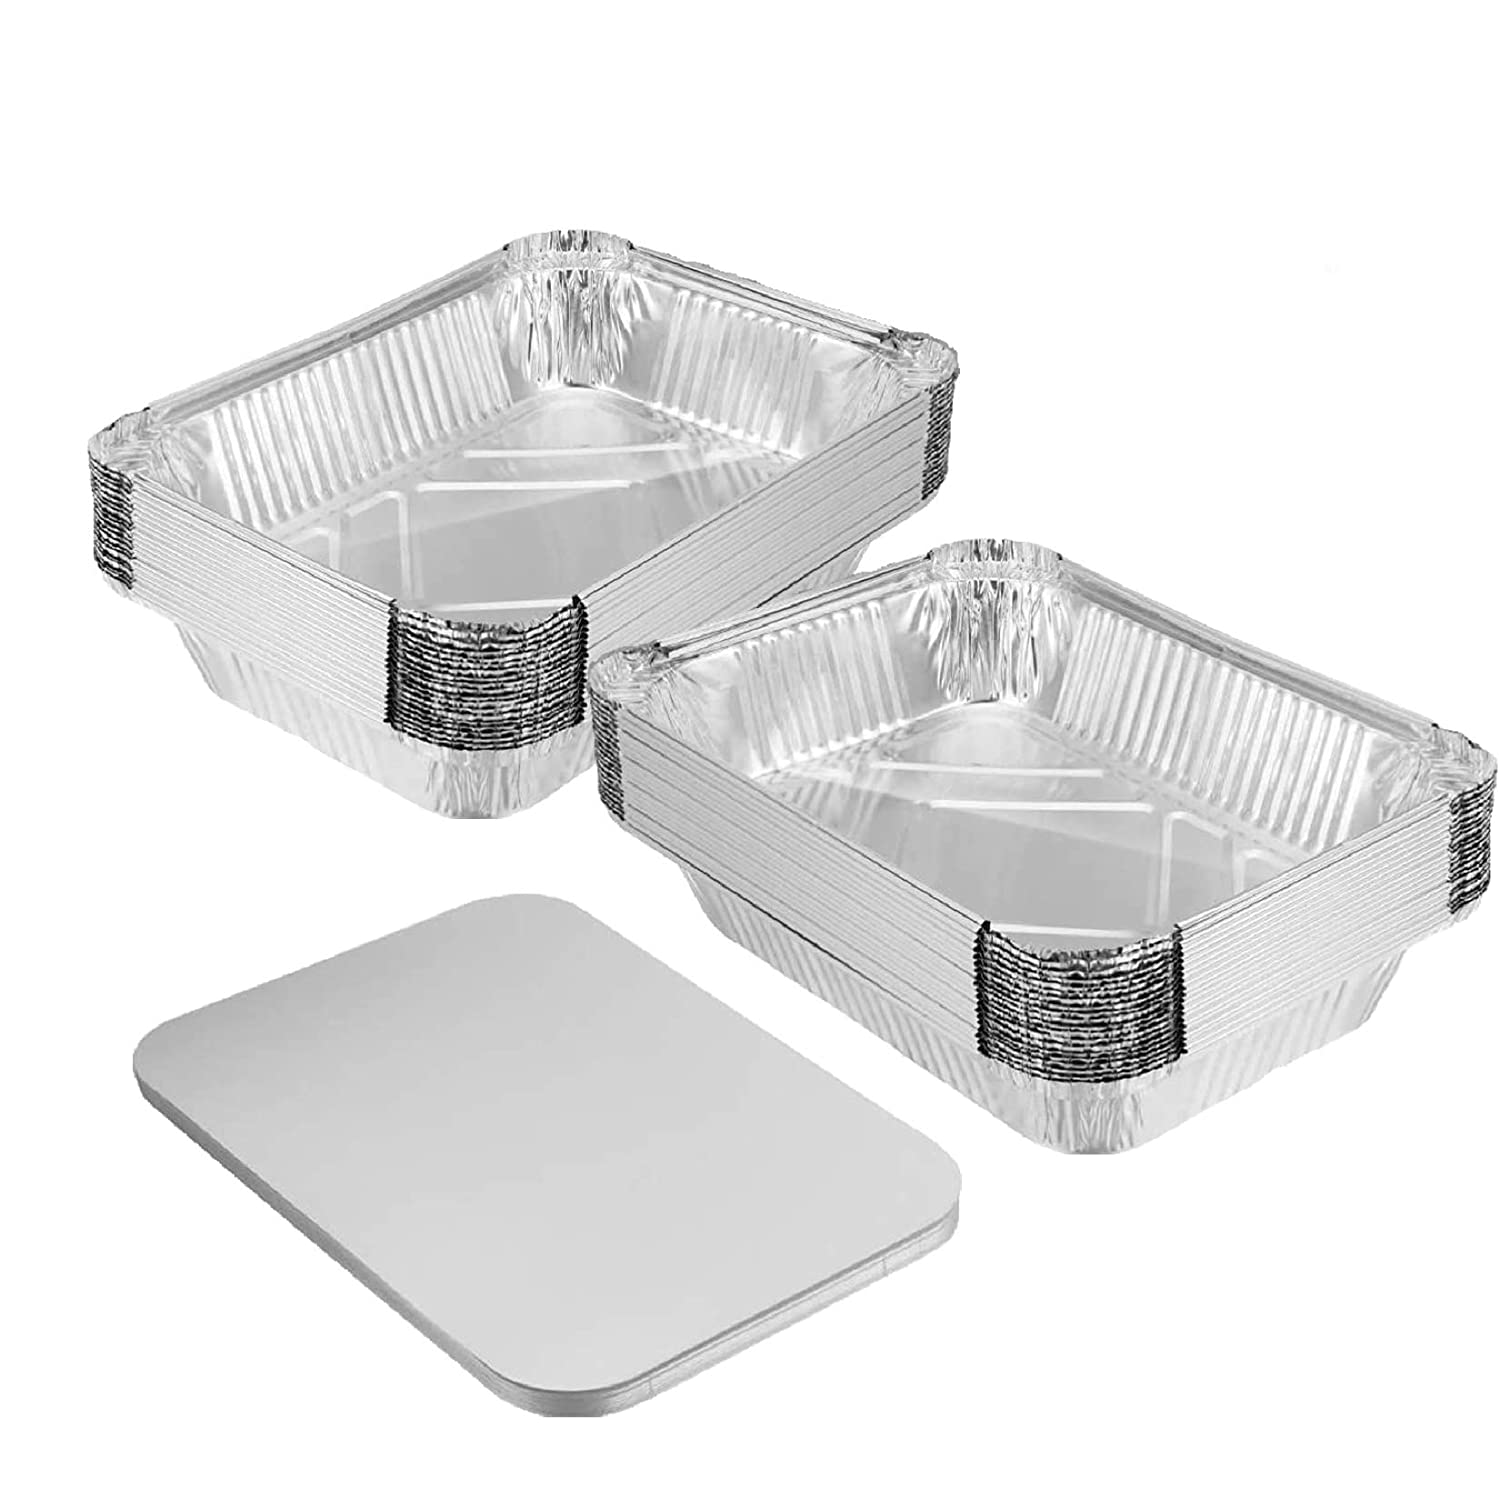 25 Pack-2.5 LB-Foil Pans with Lids-Strong Seal for Freshness-Eco-Friendly and Recyclable-8.6